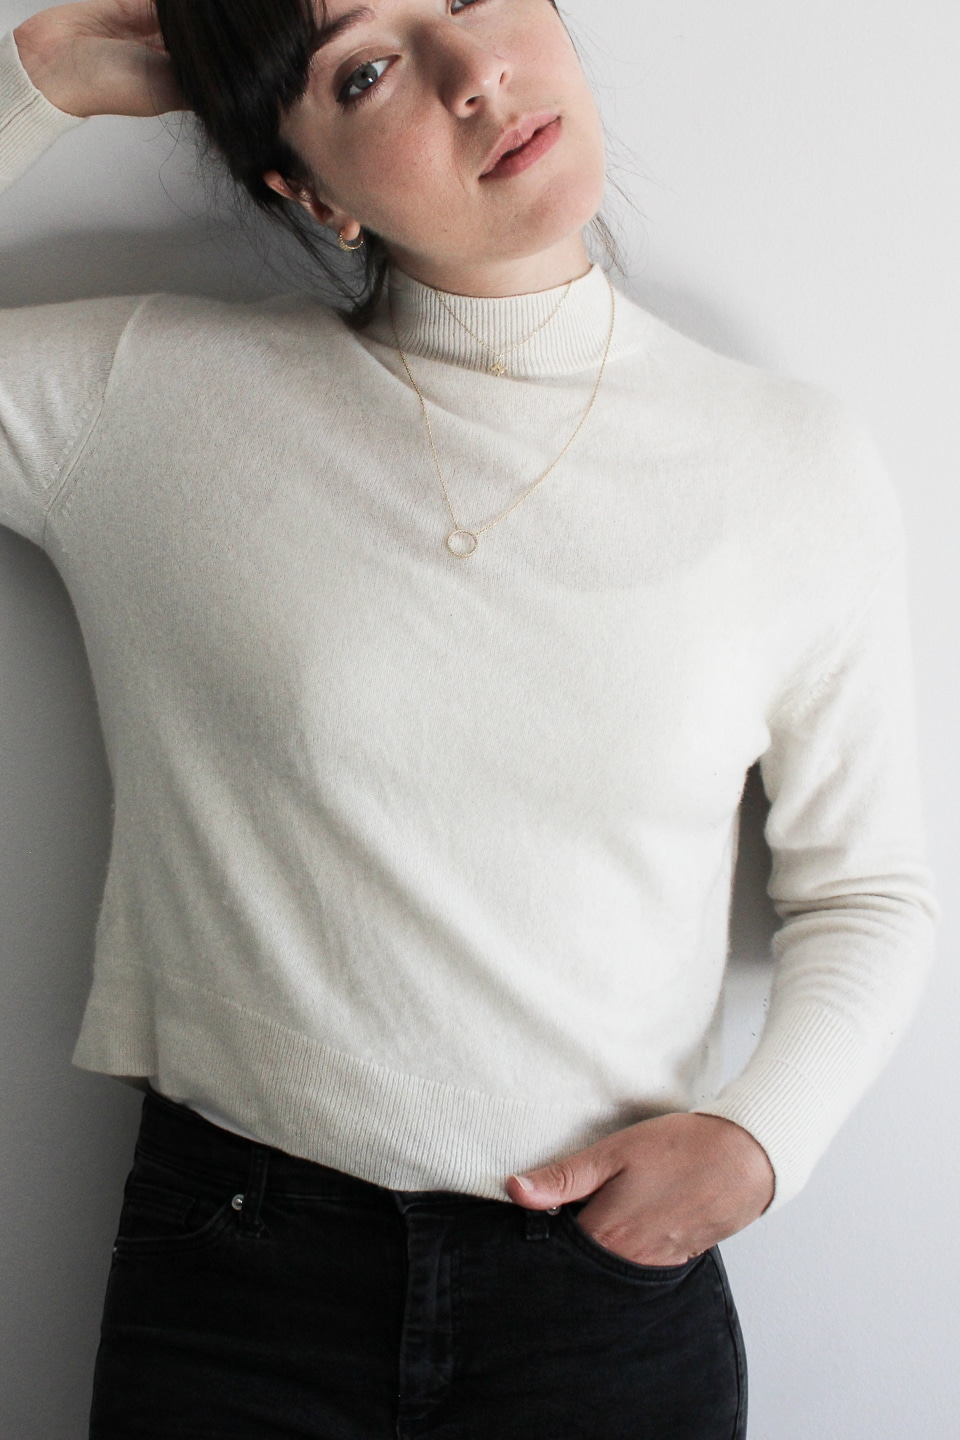 Necklaces with mock neck jumper